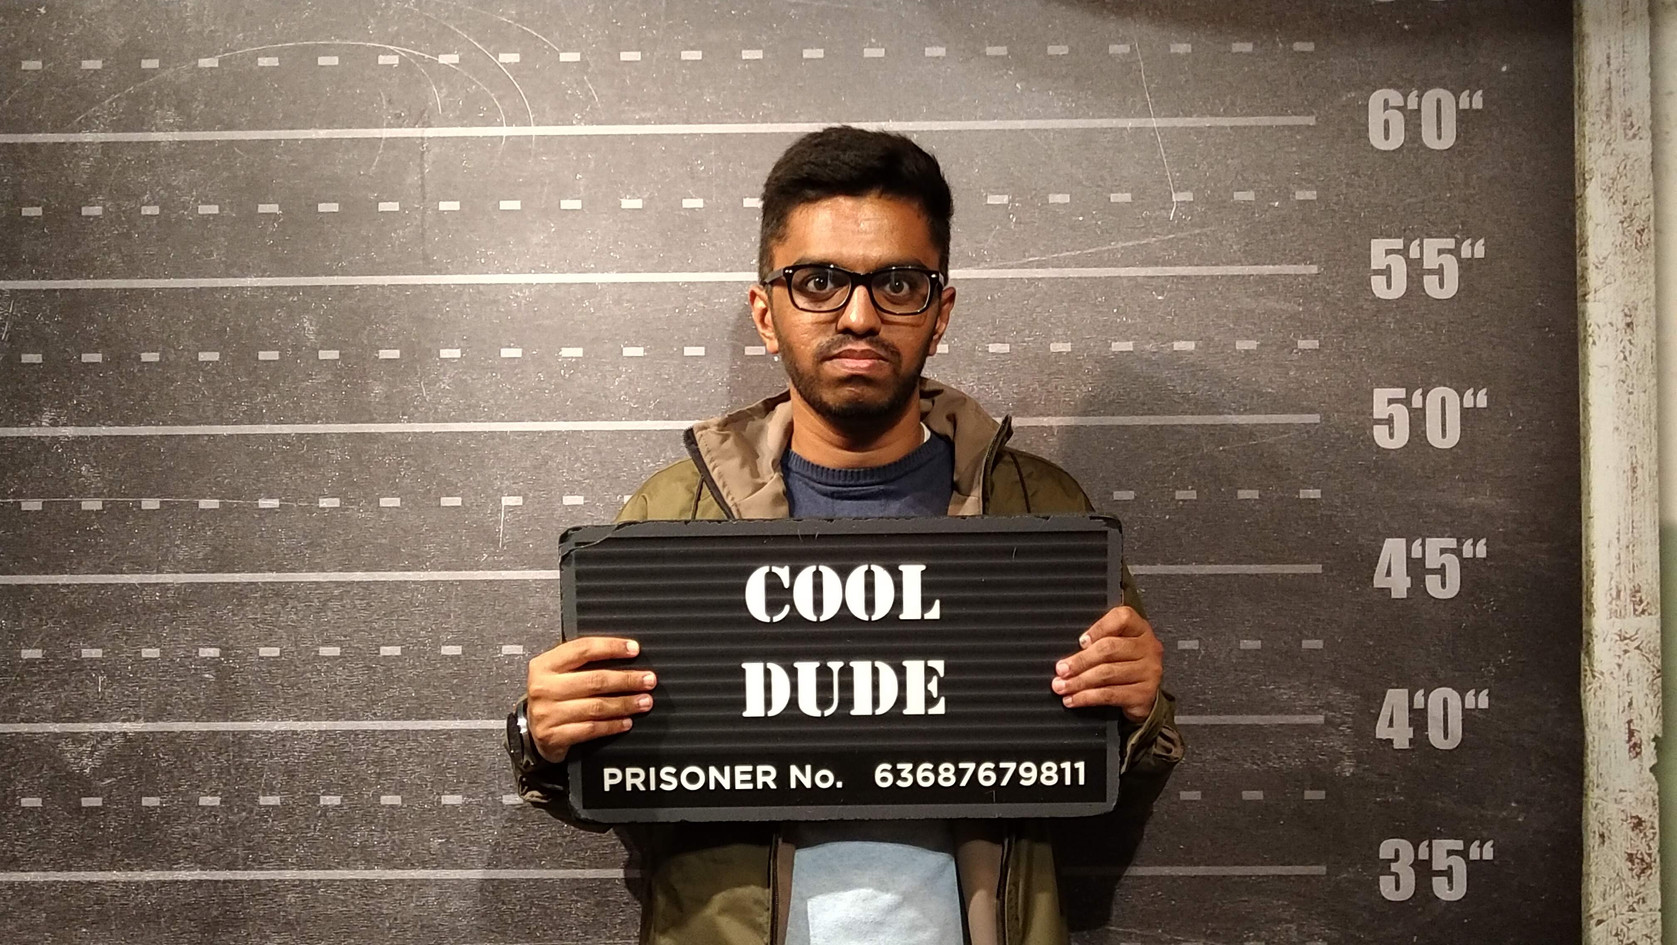 That time I got arrested for being a cool dude.